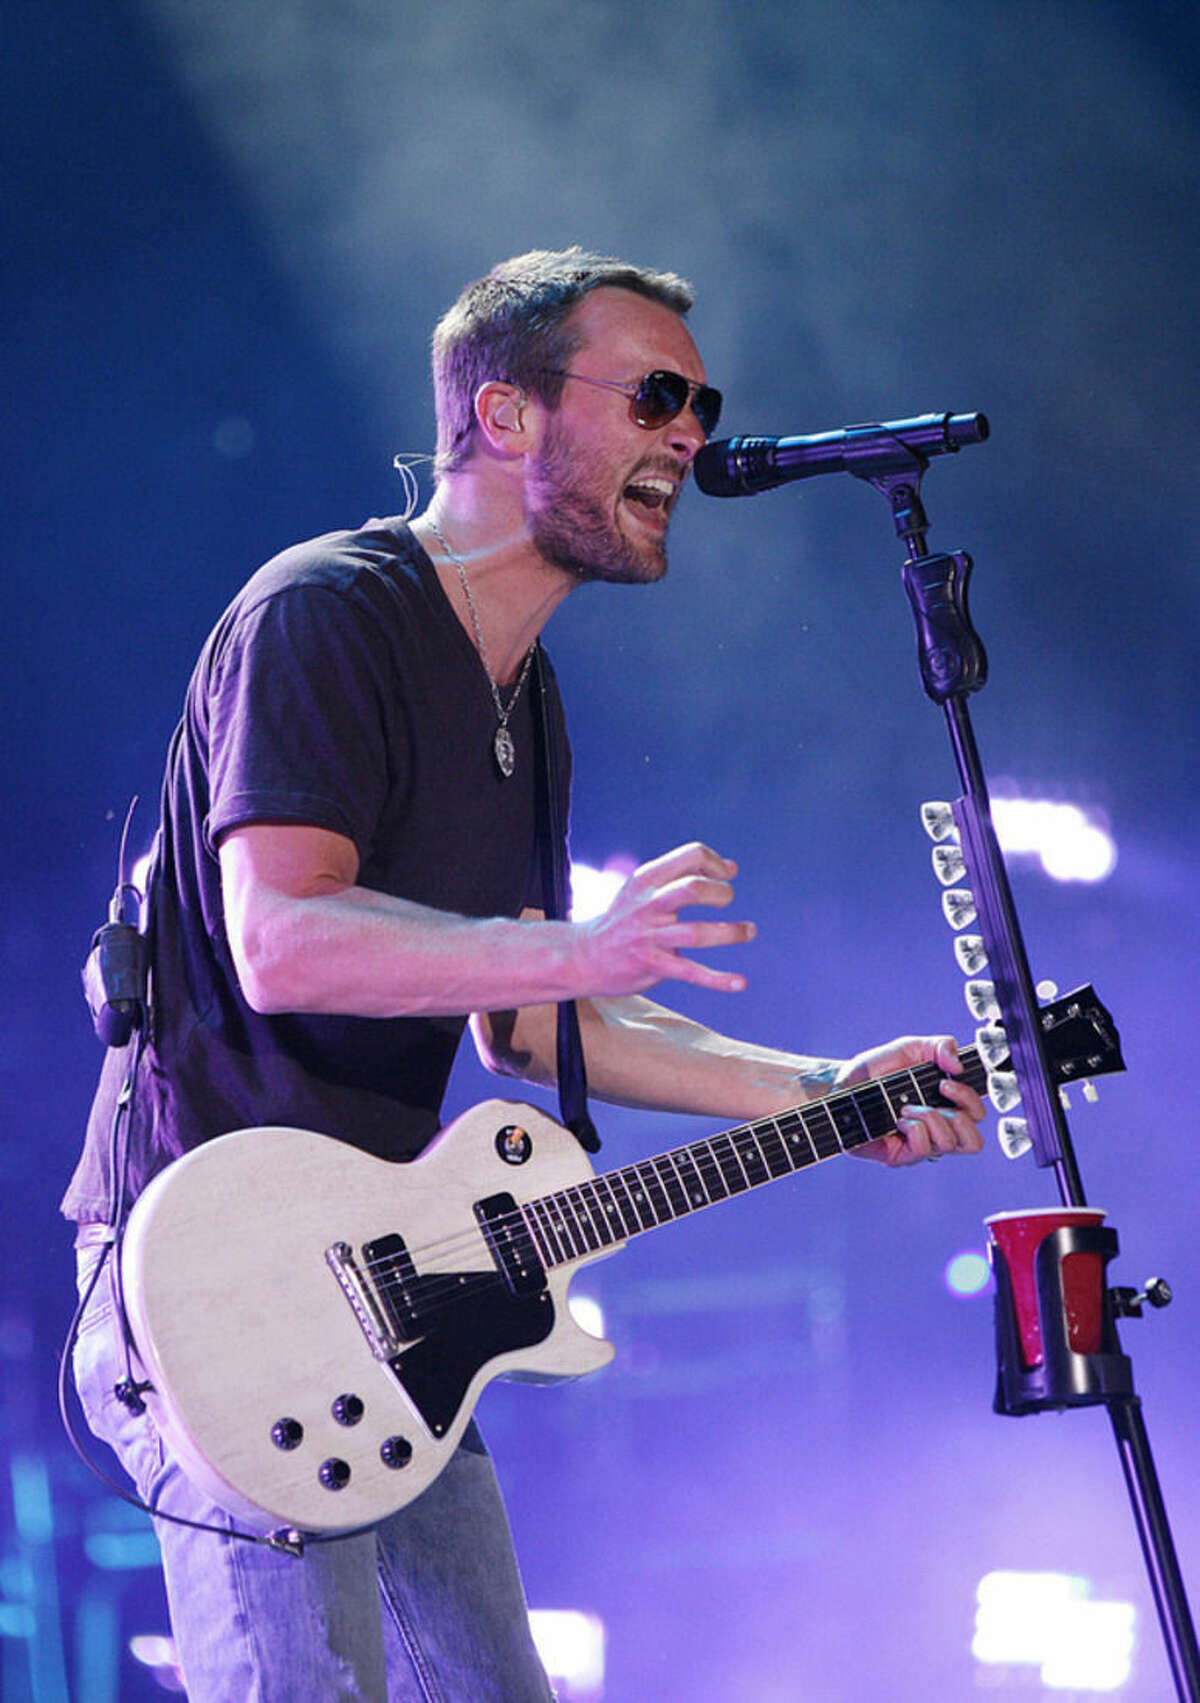 FILE - In this June 6, 2014 file photo, Eric Church performs during the CMA Fest at LP Field in Nashville, Tenn. Nominees for the 2014 Country Music Association Awards are announced Wednesday morning, Sept. 3, 2014, on